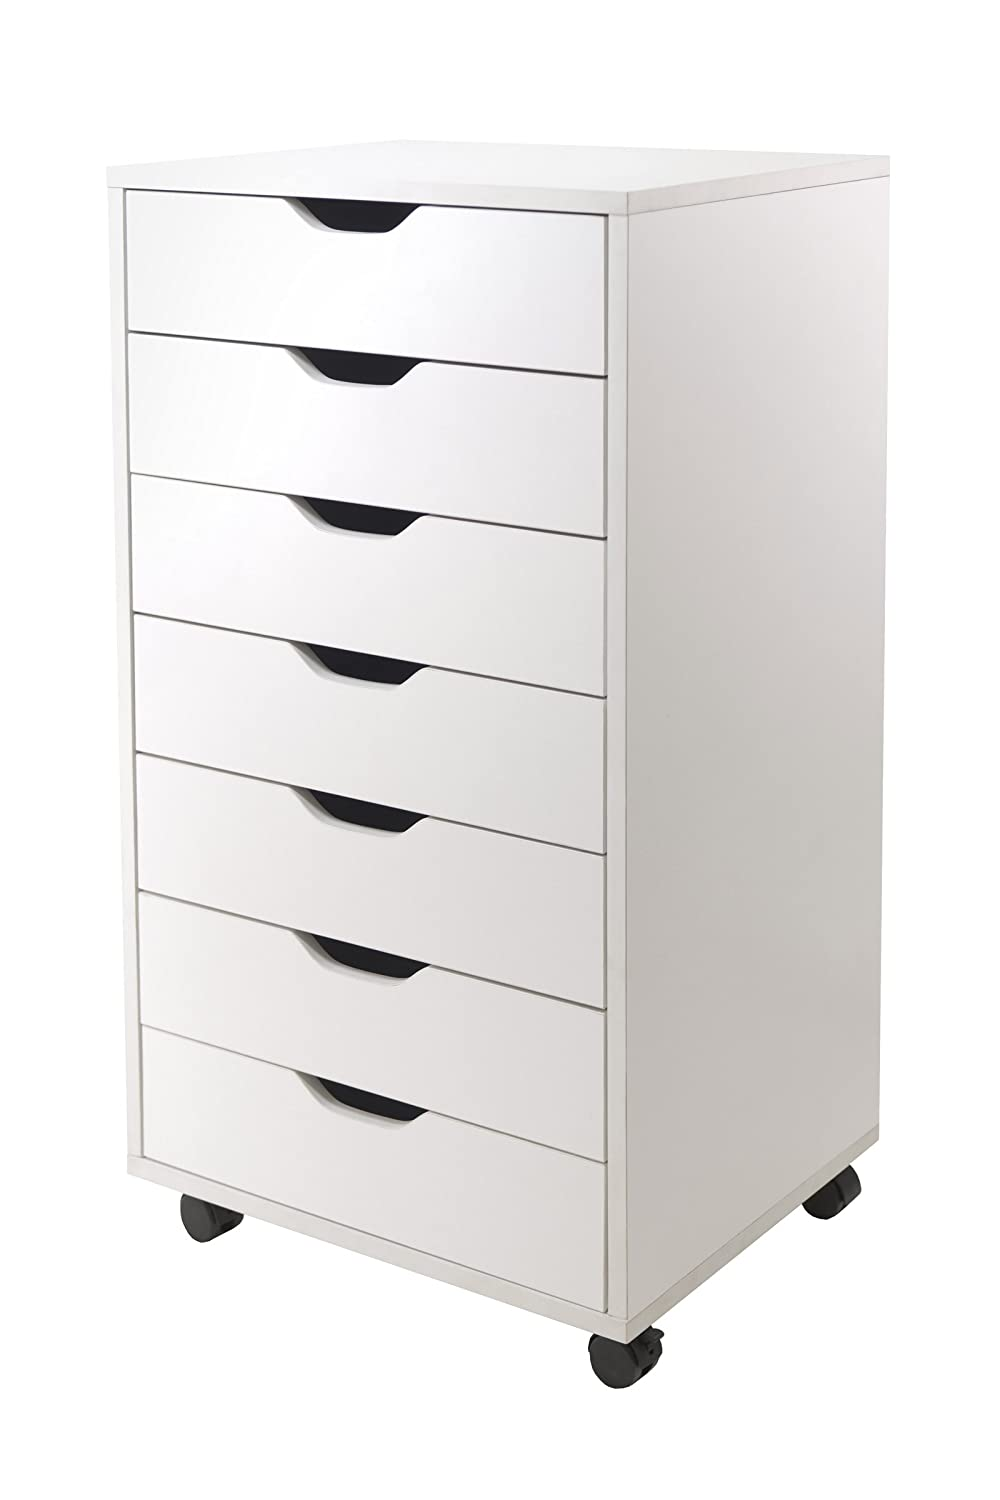 Attirant Amazon.com: Winsome Halifax Cabinet For Closet/Office, 7 Drawers, White:  Kitchen U0026 Dining